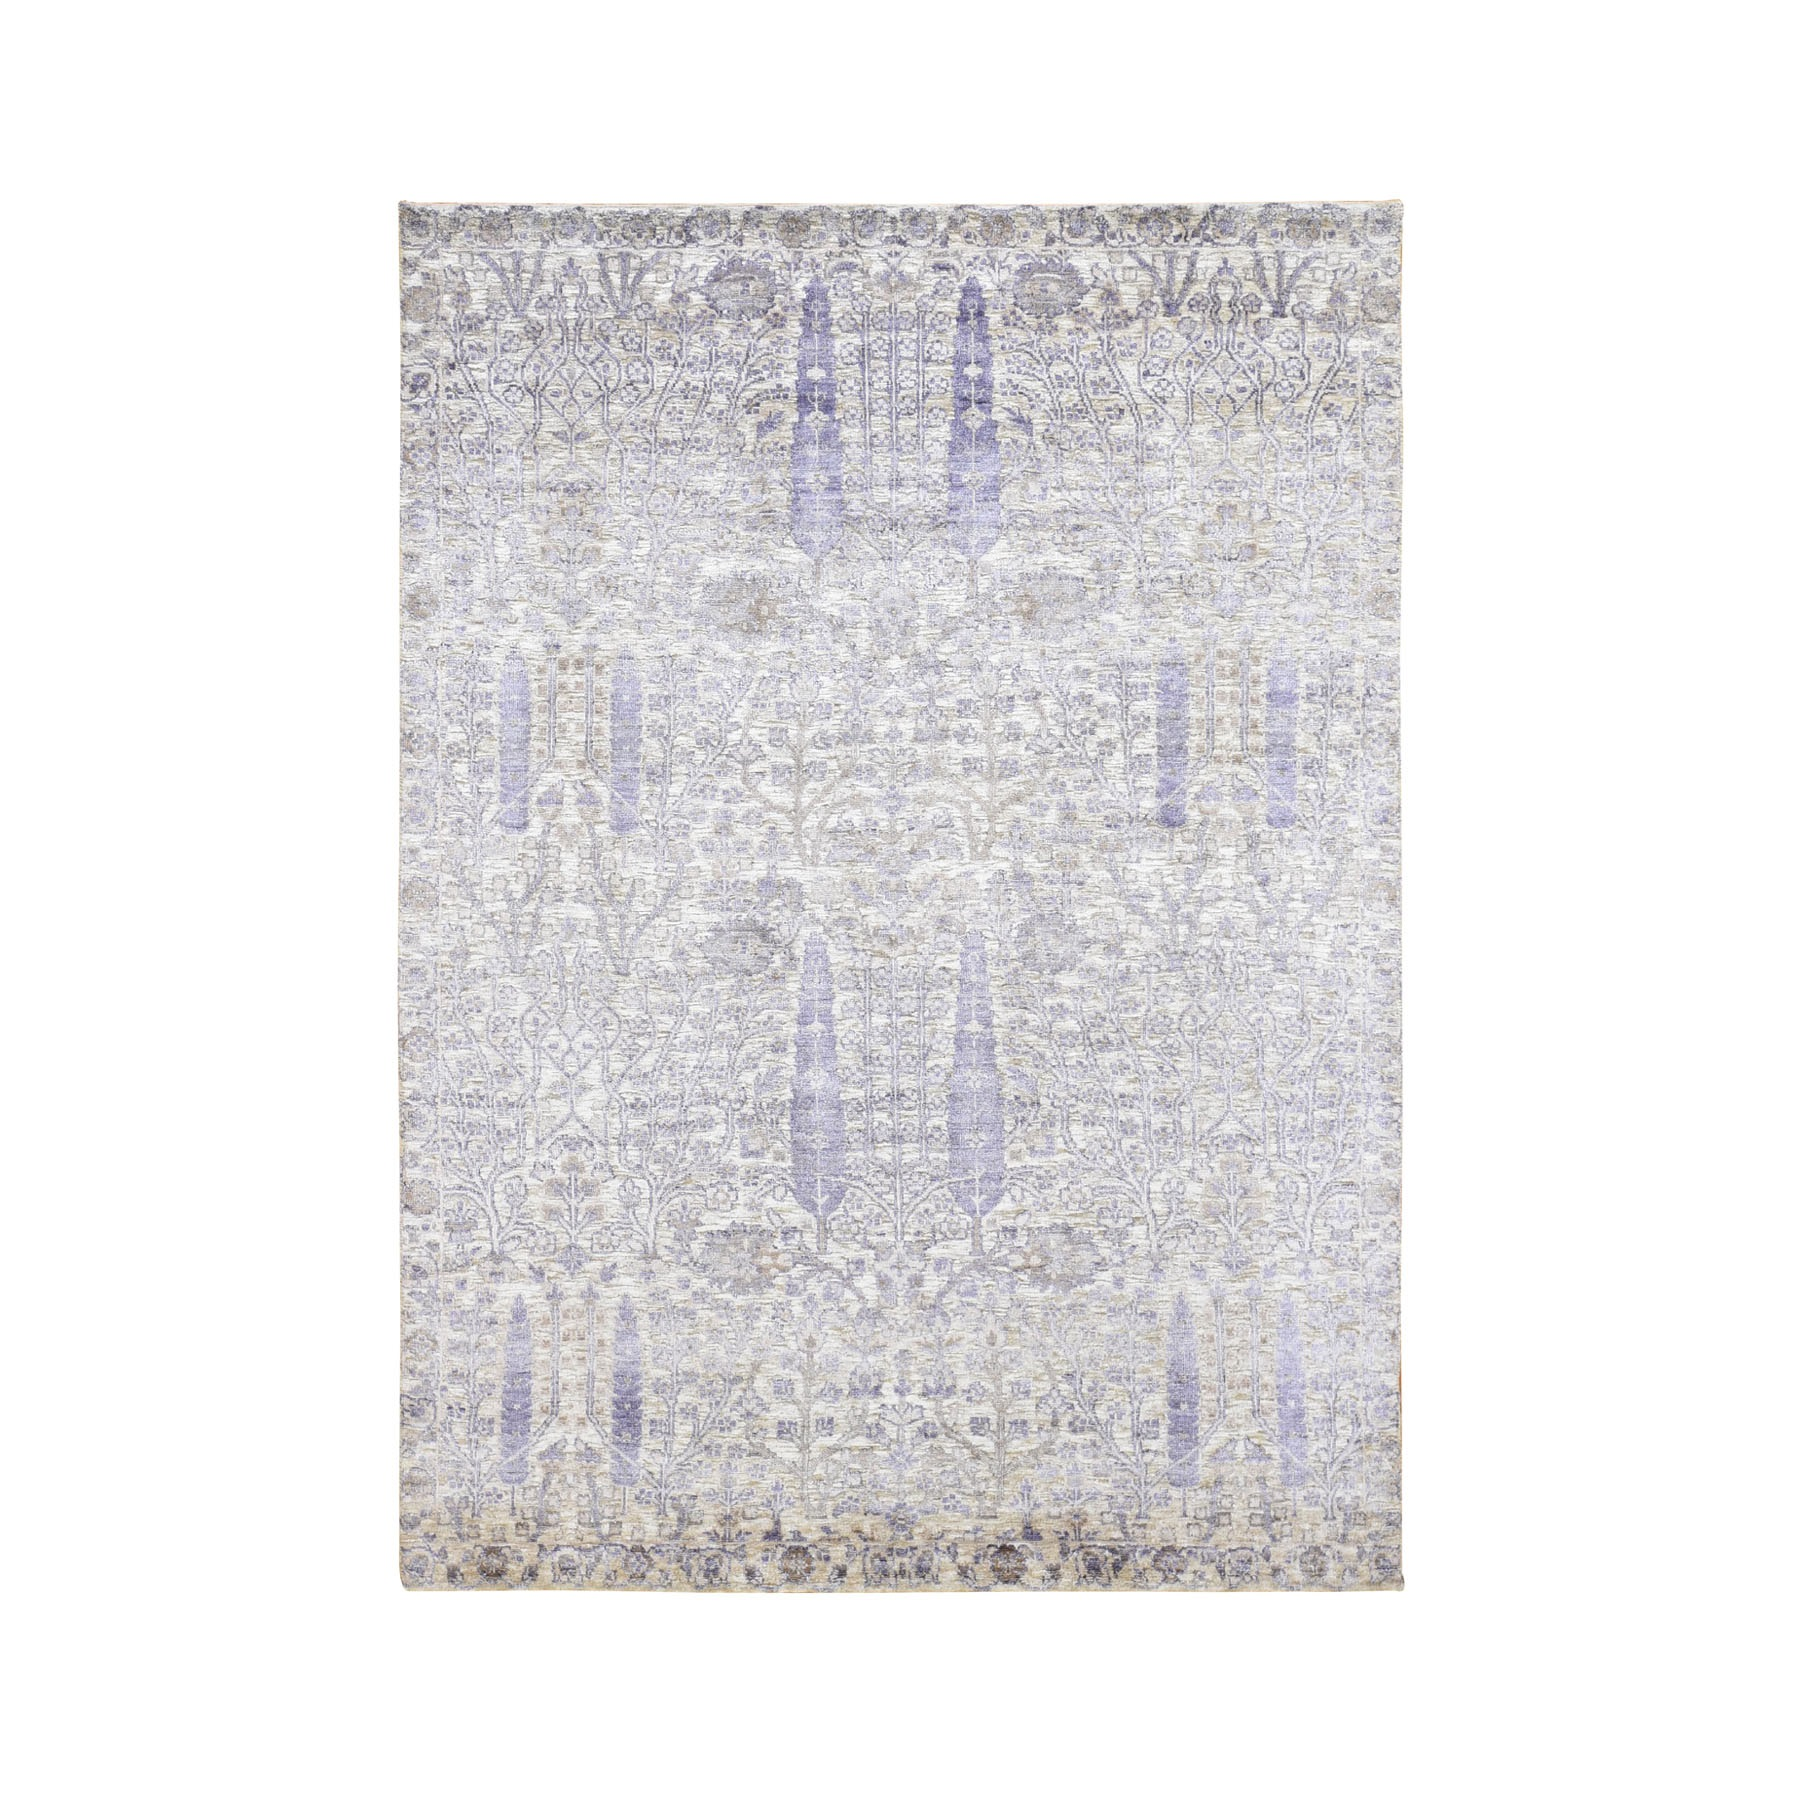 5'X6'10' Willow And Cypress Tree Design Silk With Textured Wool Hand Knotted Oriental Rug moad8d0c